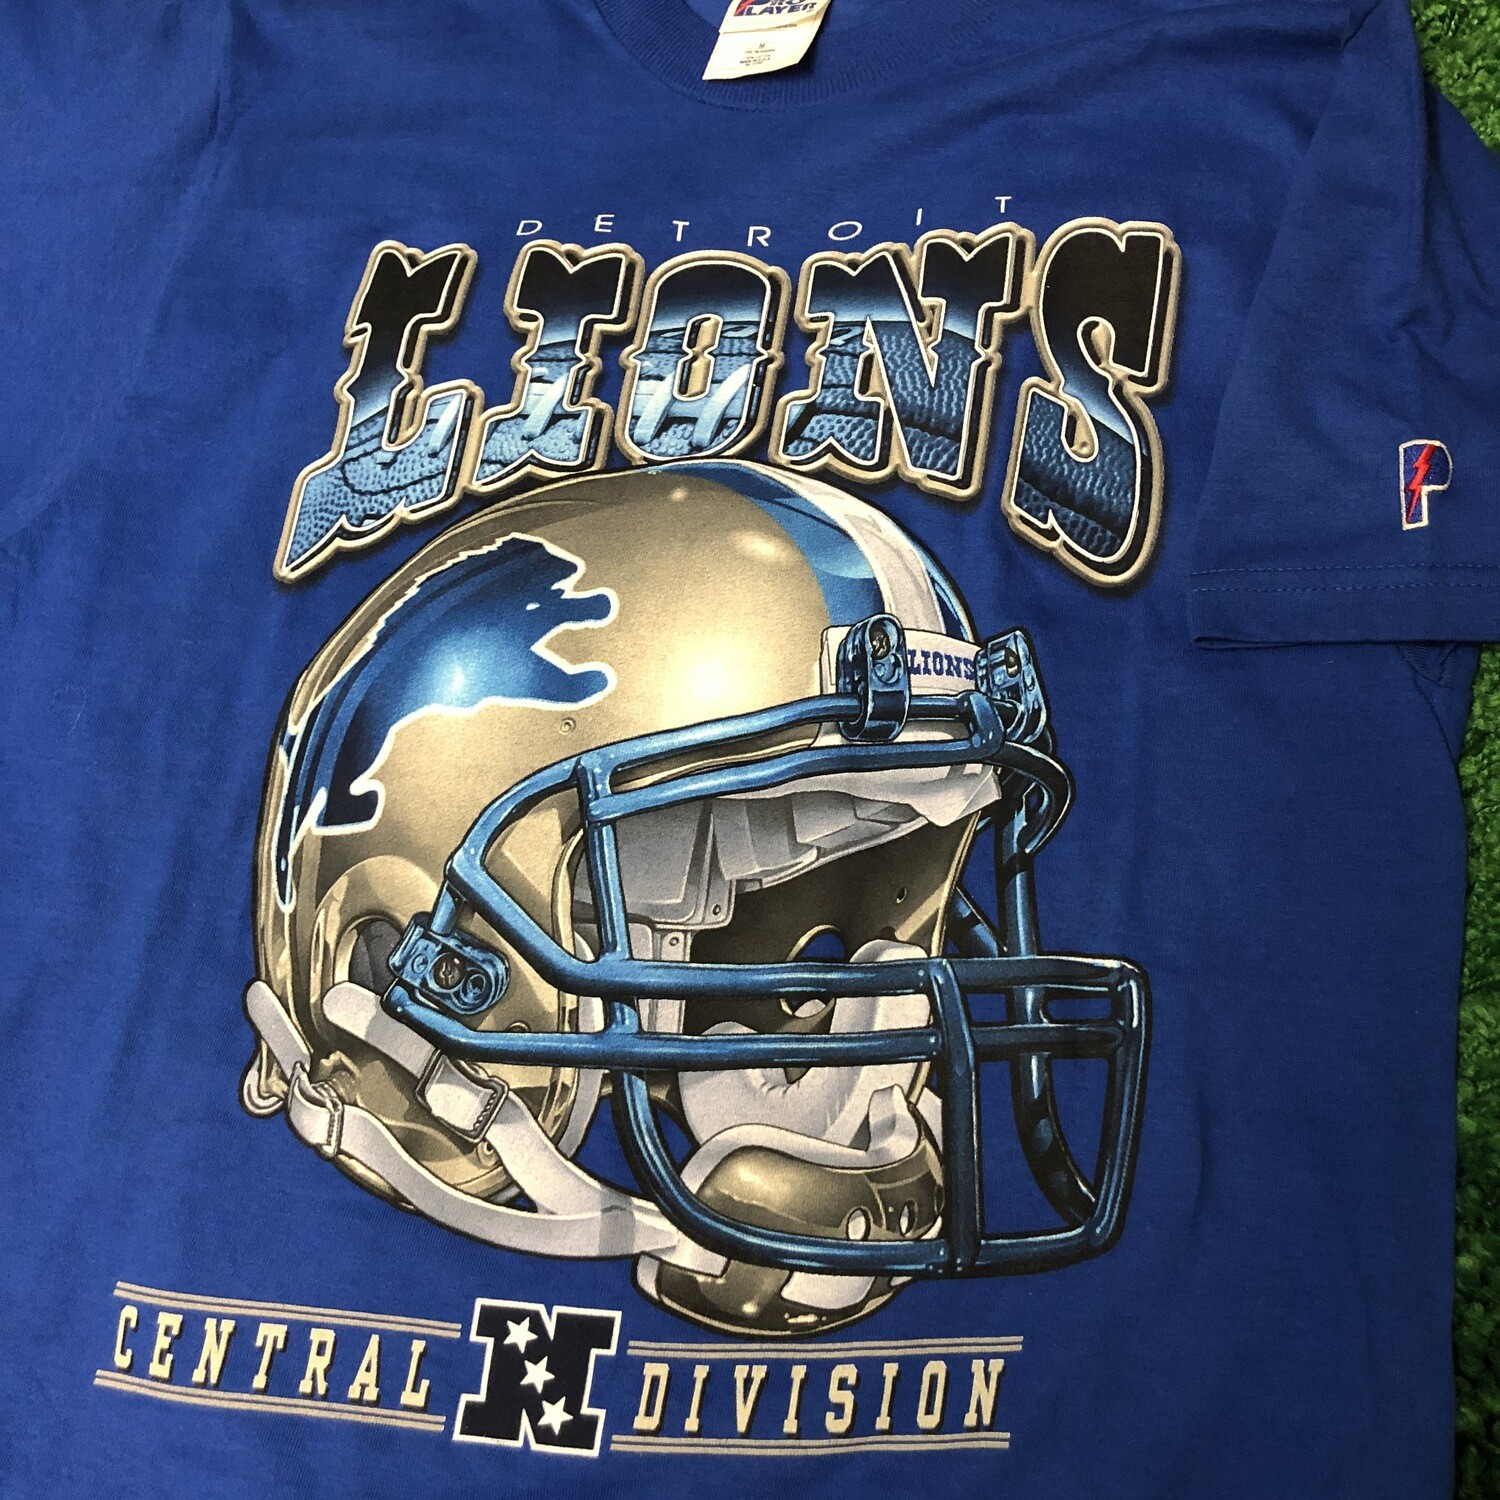 Detroit Lions Pro Player Tee Size Medium